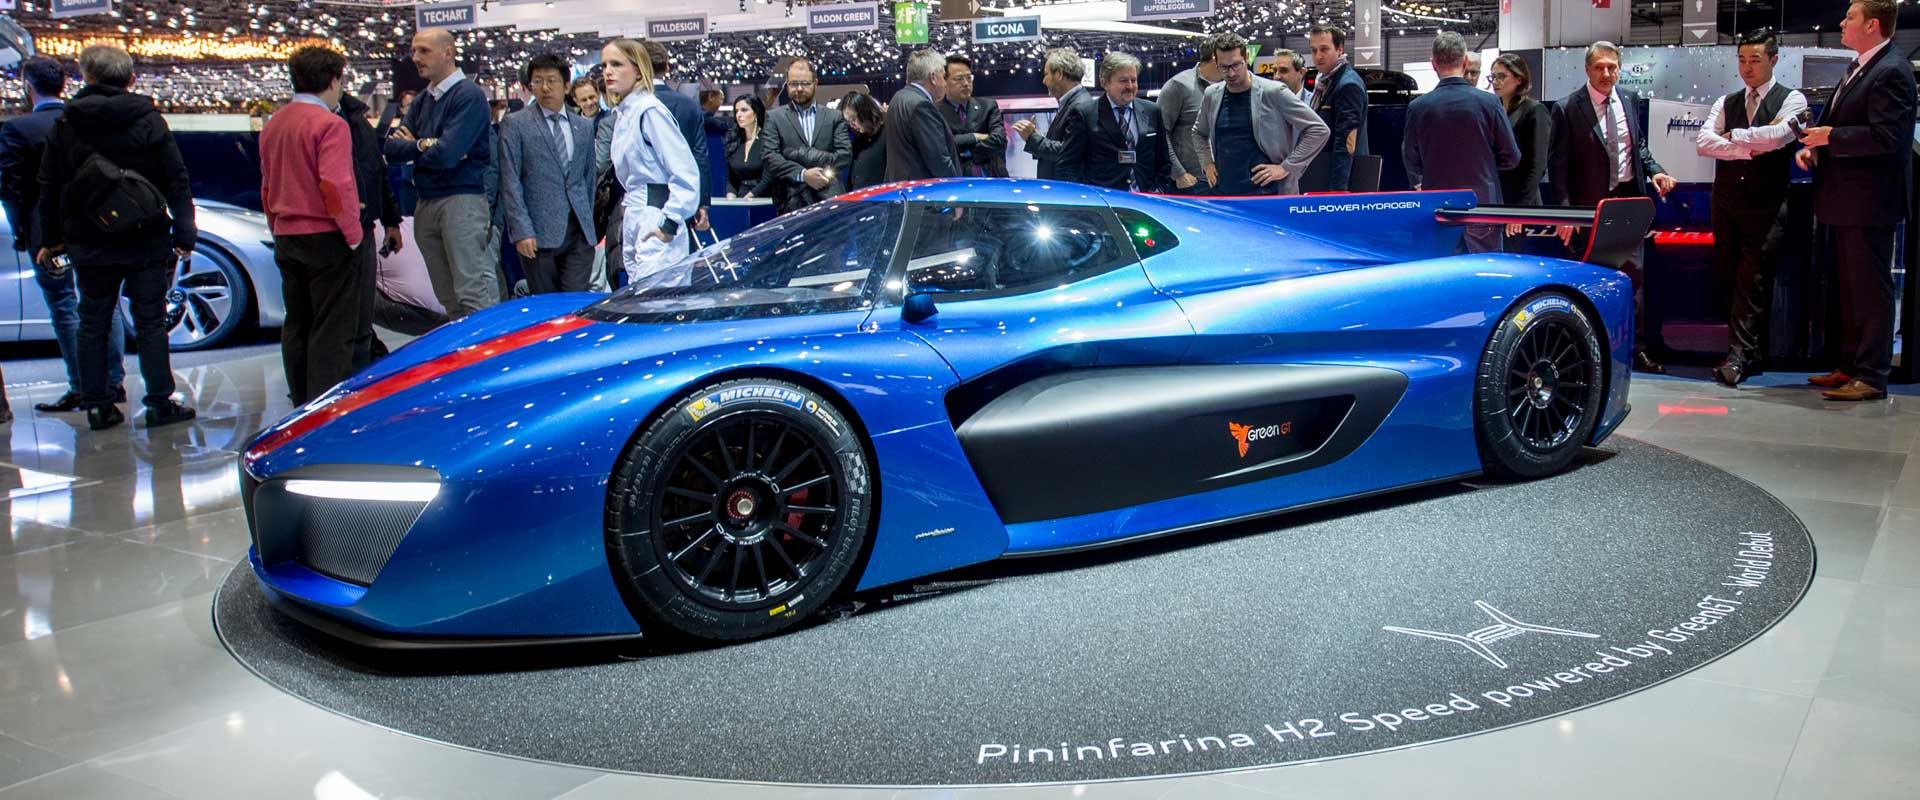 Adess Pininfarina H2 Speed